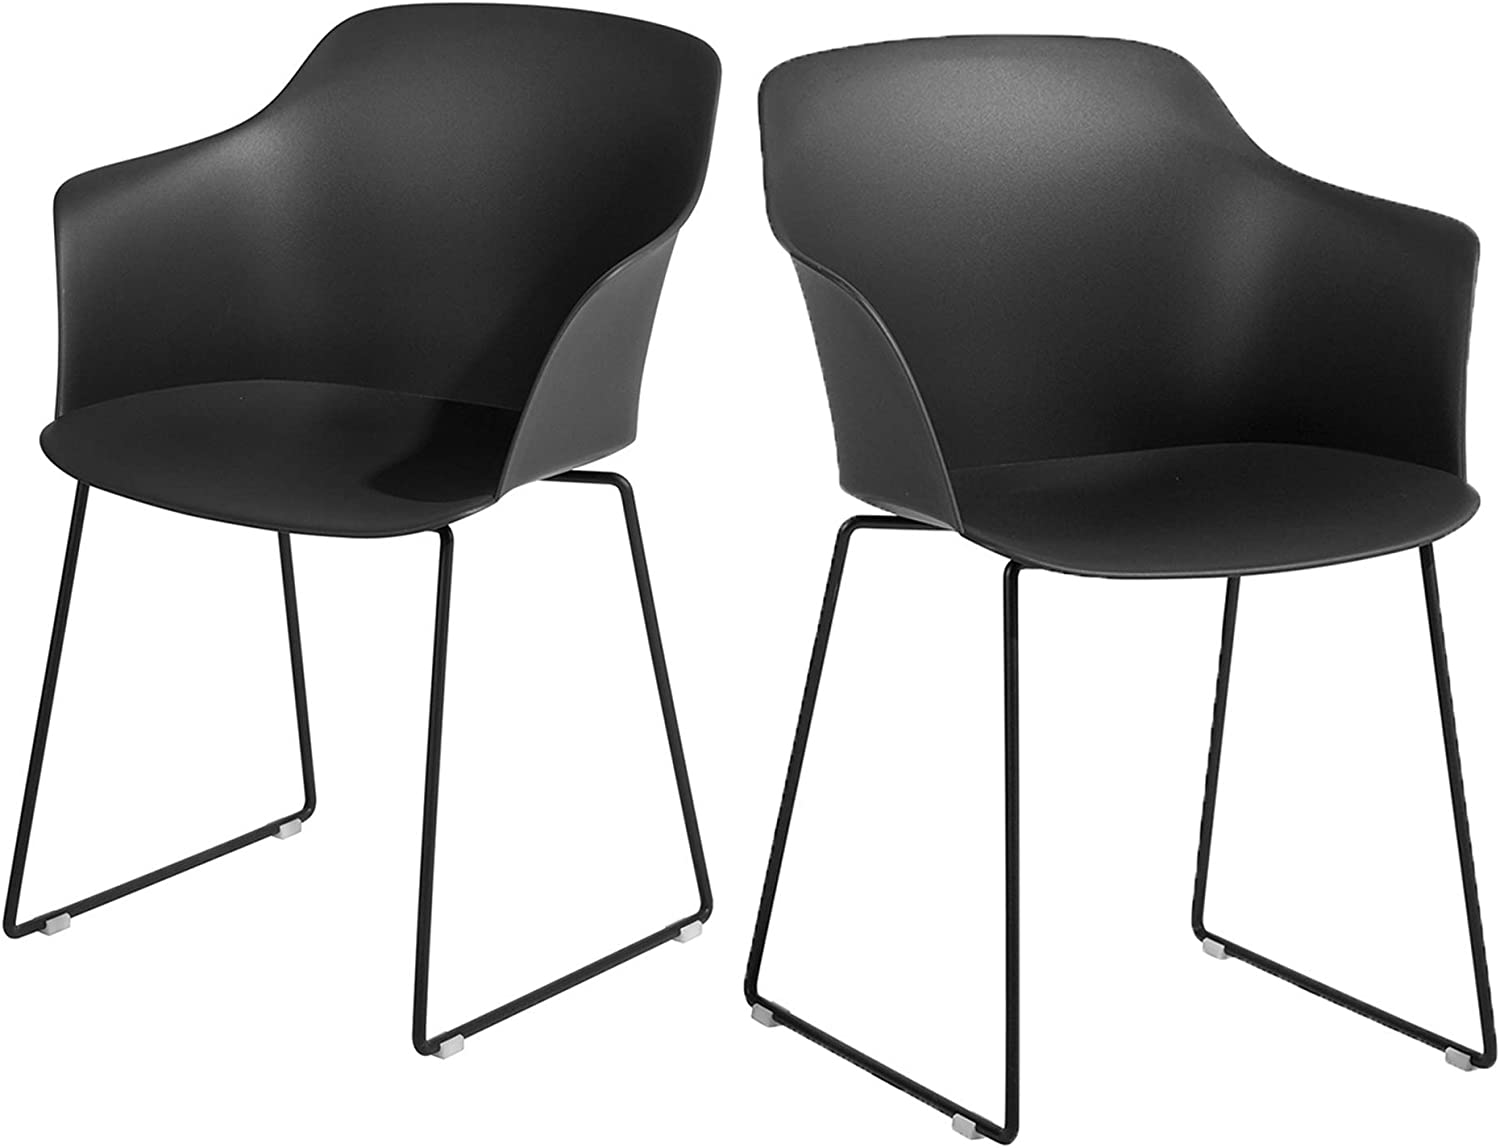 HOMY CASA Modern Living Room Dining Chairs, Large Side Chairs with Metal Leg for Kitchen Dining Room Bedroom Leisure Chairs Set of 2(Black)